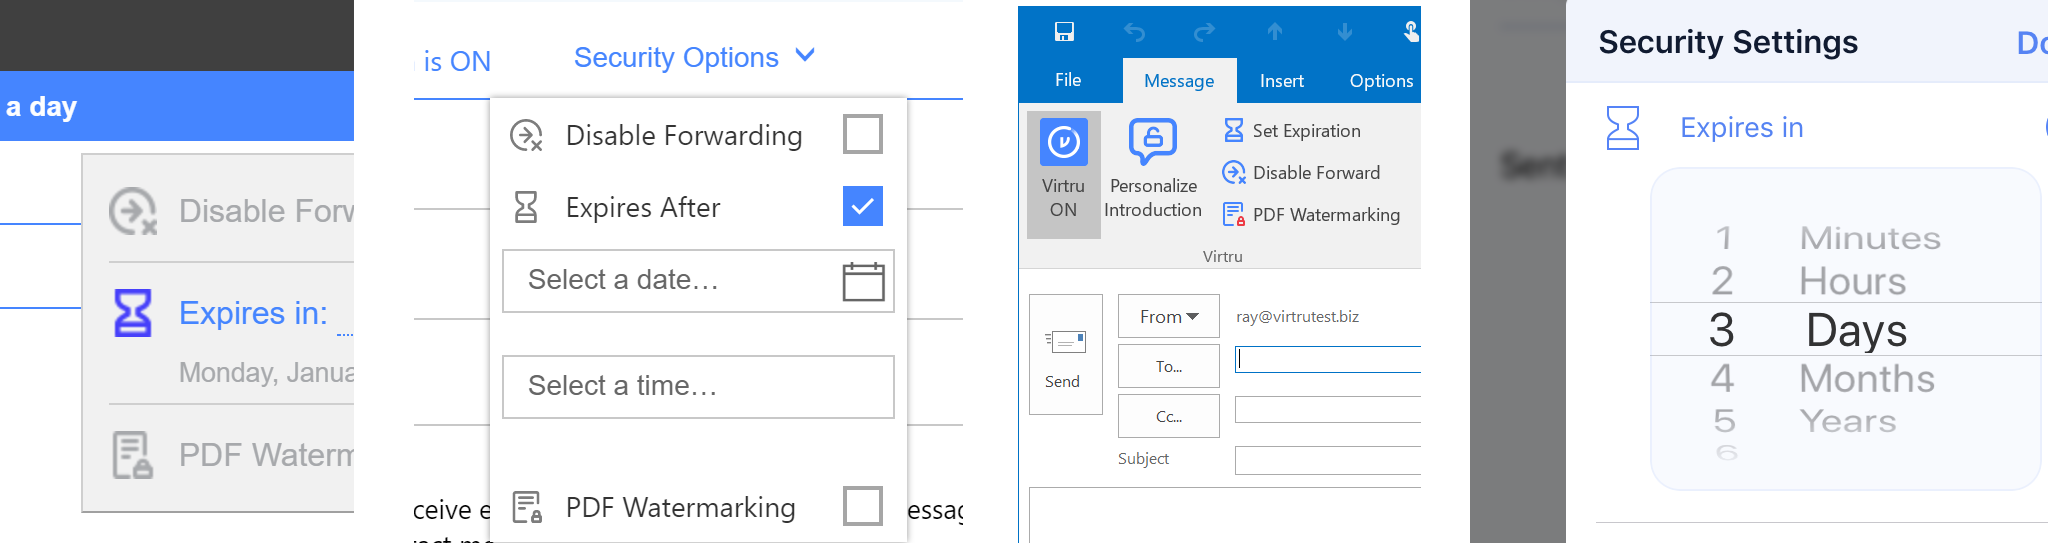 Certain elements had to be recognizeable across integrations. Here is an example of how Virtru's iconography carried across different email clients. From left to right: Gmail, Outlook Web App, Outlook 2016, iOS app.